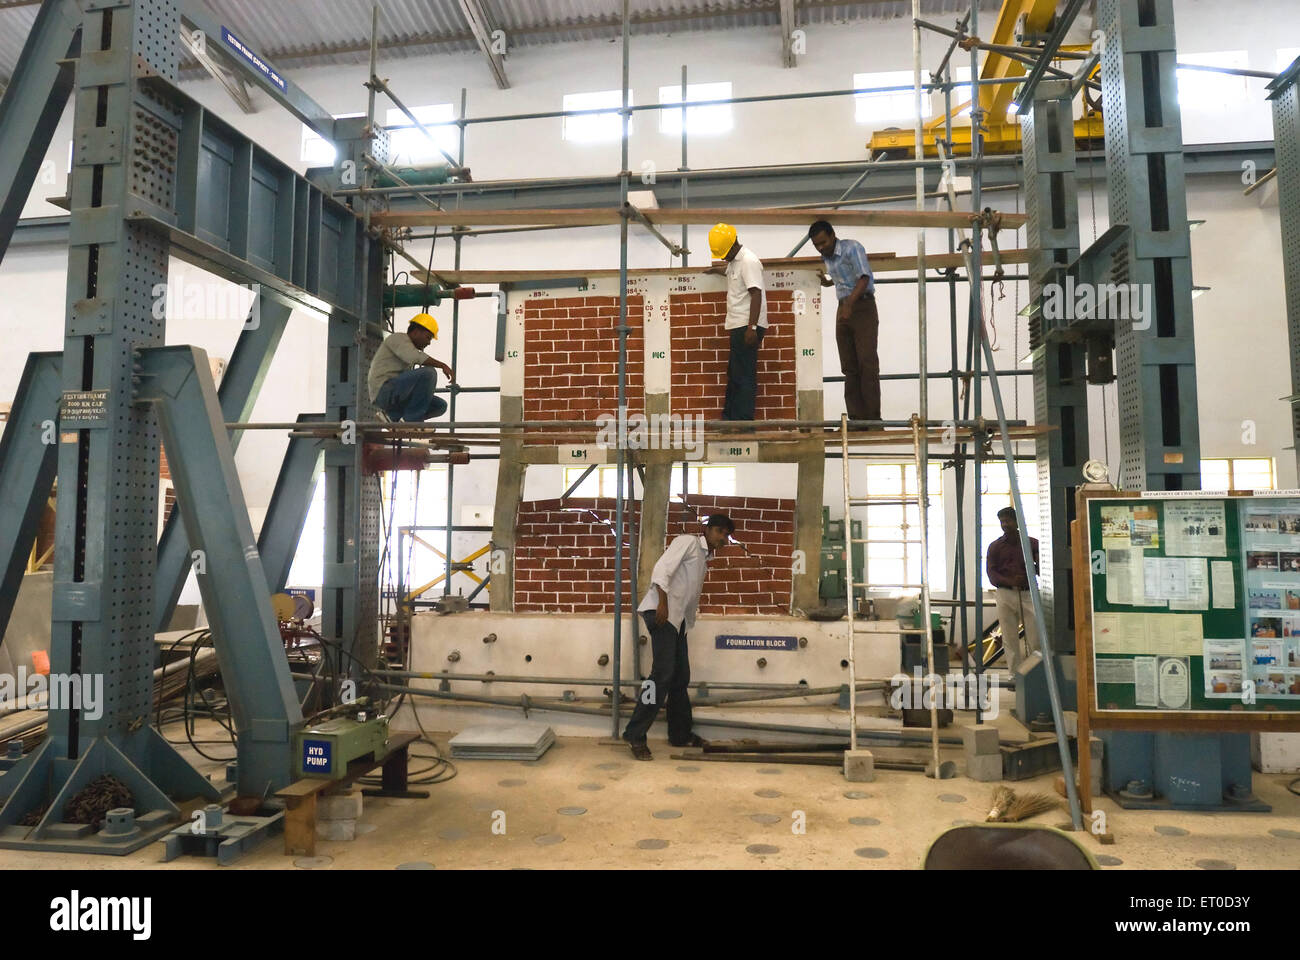 Civil engineering lab in coimbatore institute of technology engineering colleges ; Tamil Nadu ; India - Stock Image